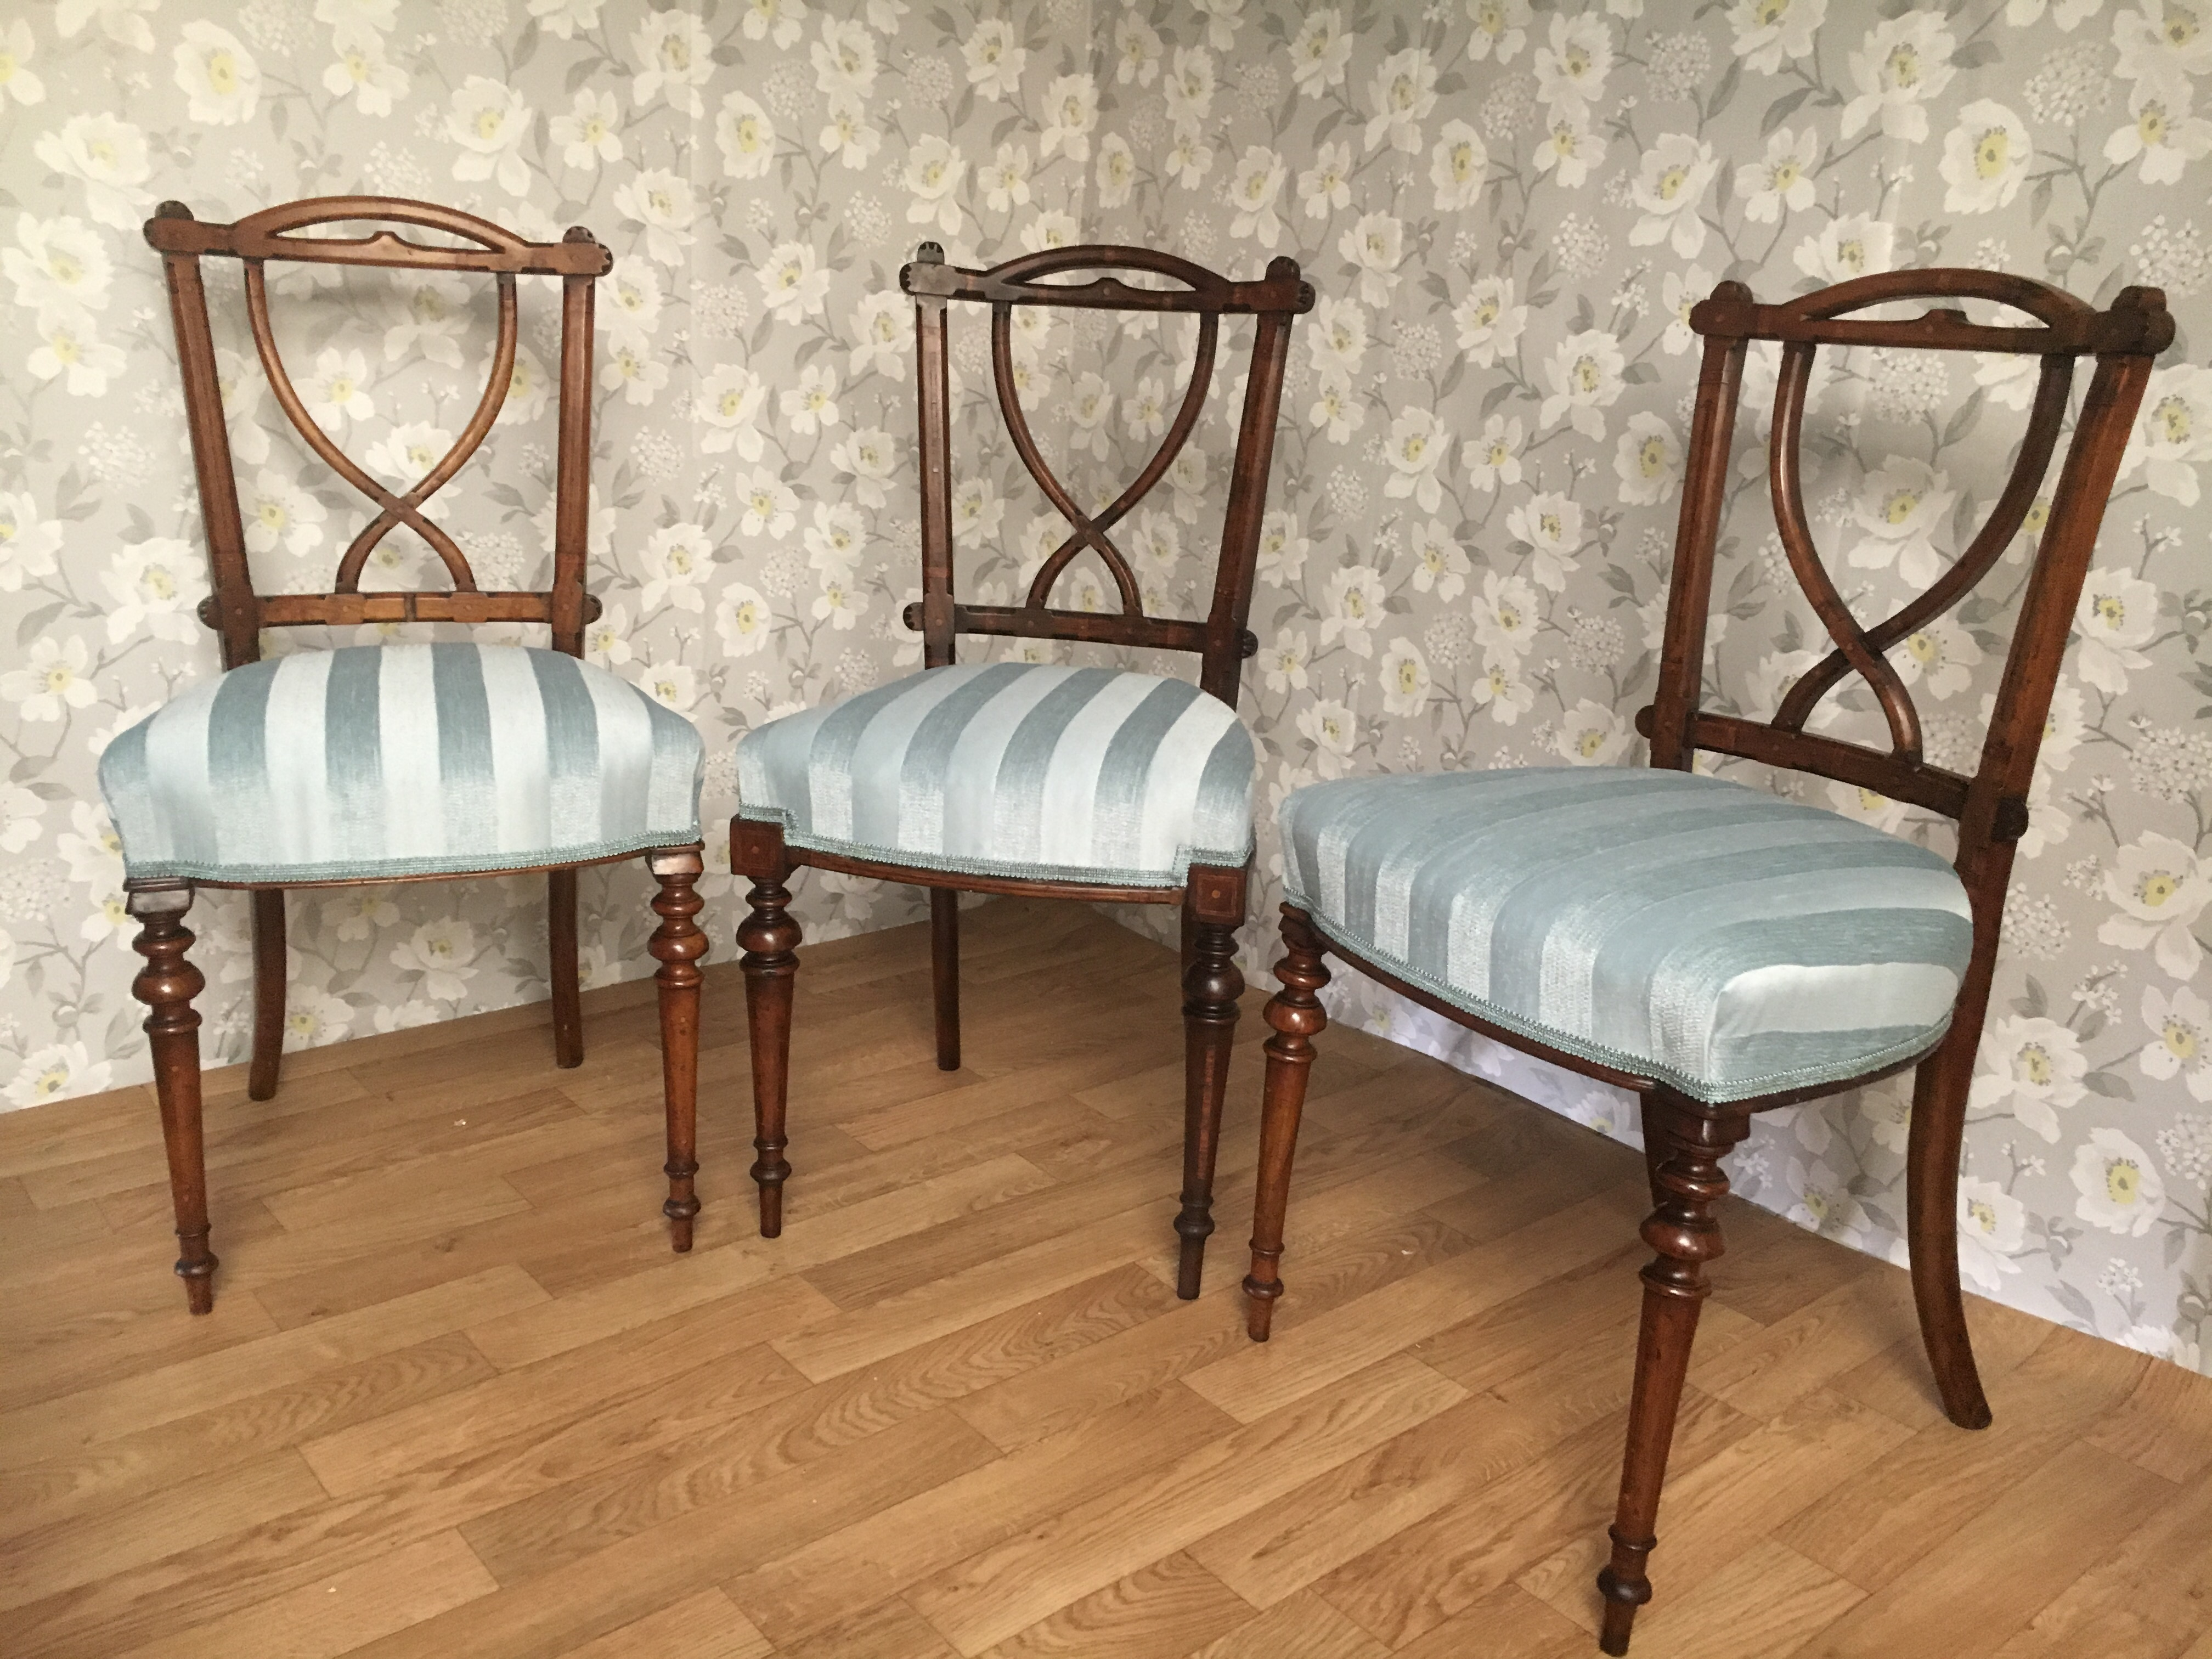 Victorian Dining Chairs Number 10 Upholstery in Dorset : C2D2C649 B24B 4BE0 85CF 3CEC5F603DE9 from number10upholstery.co.uk size 4032 x 3024 jpeg 2016kB